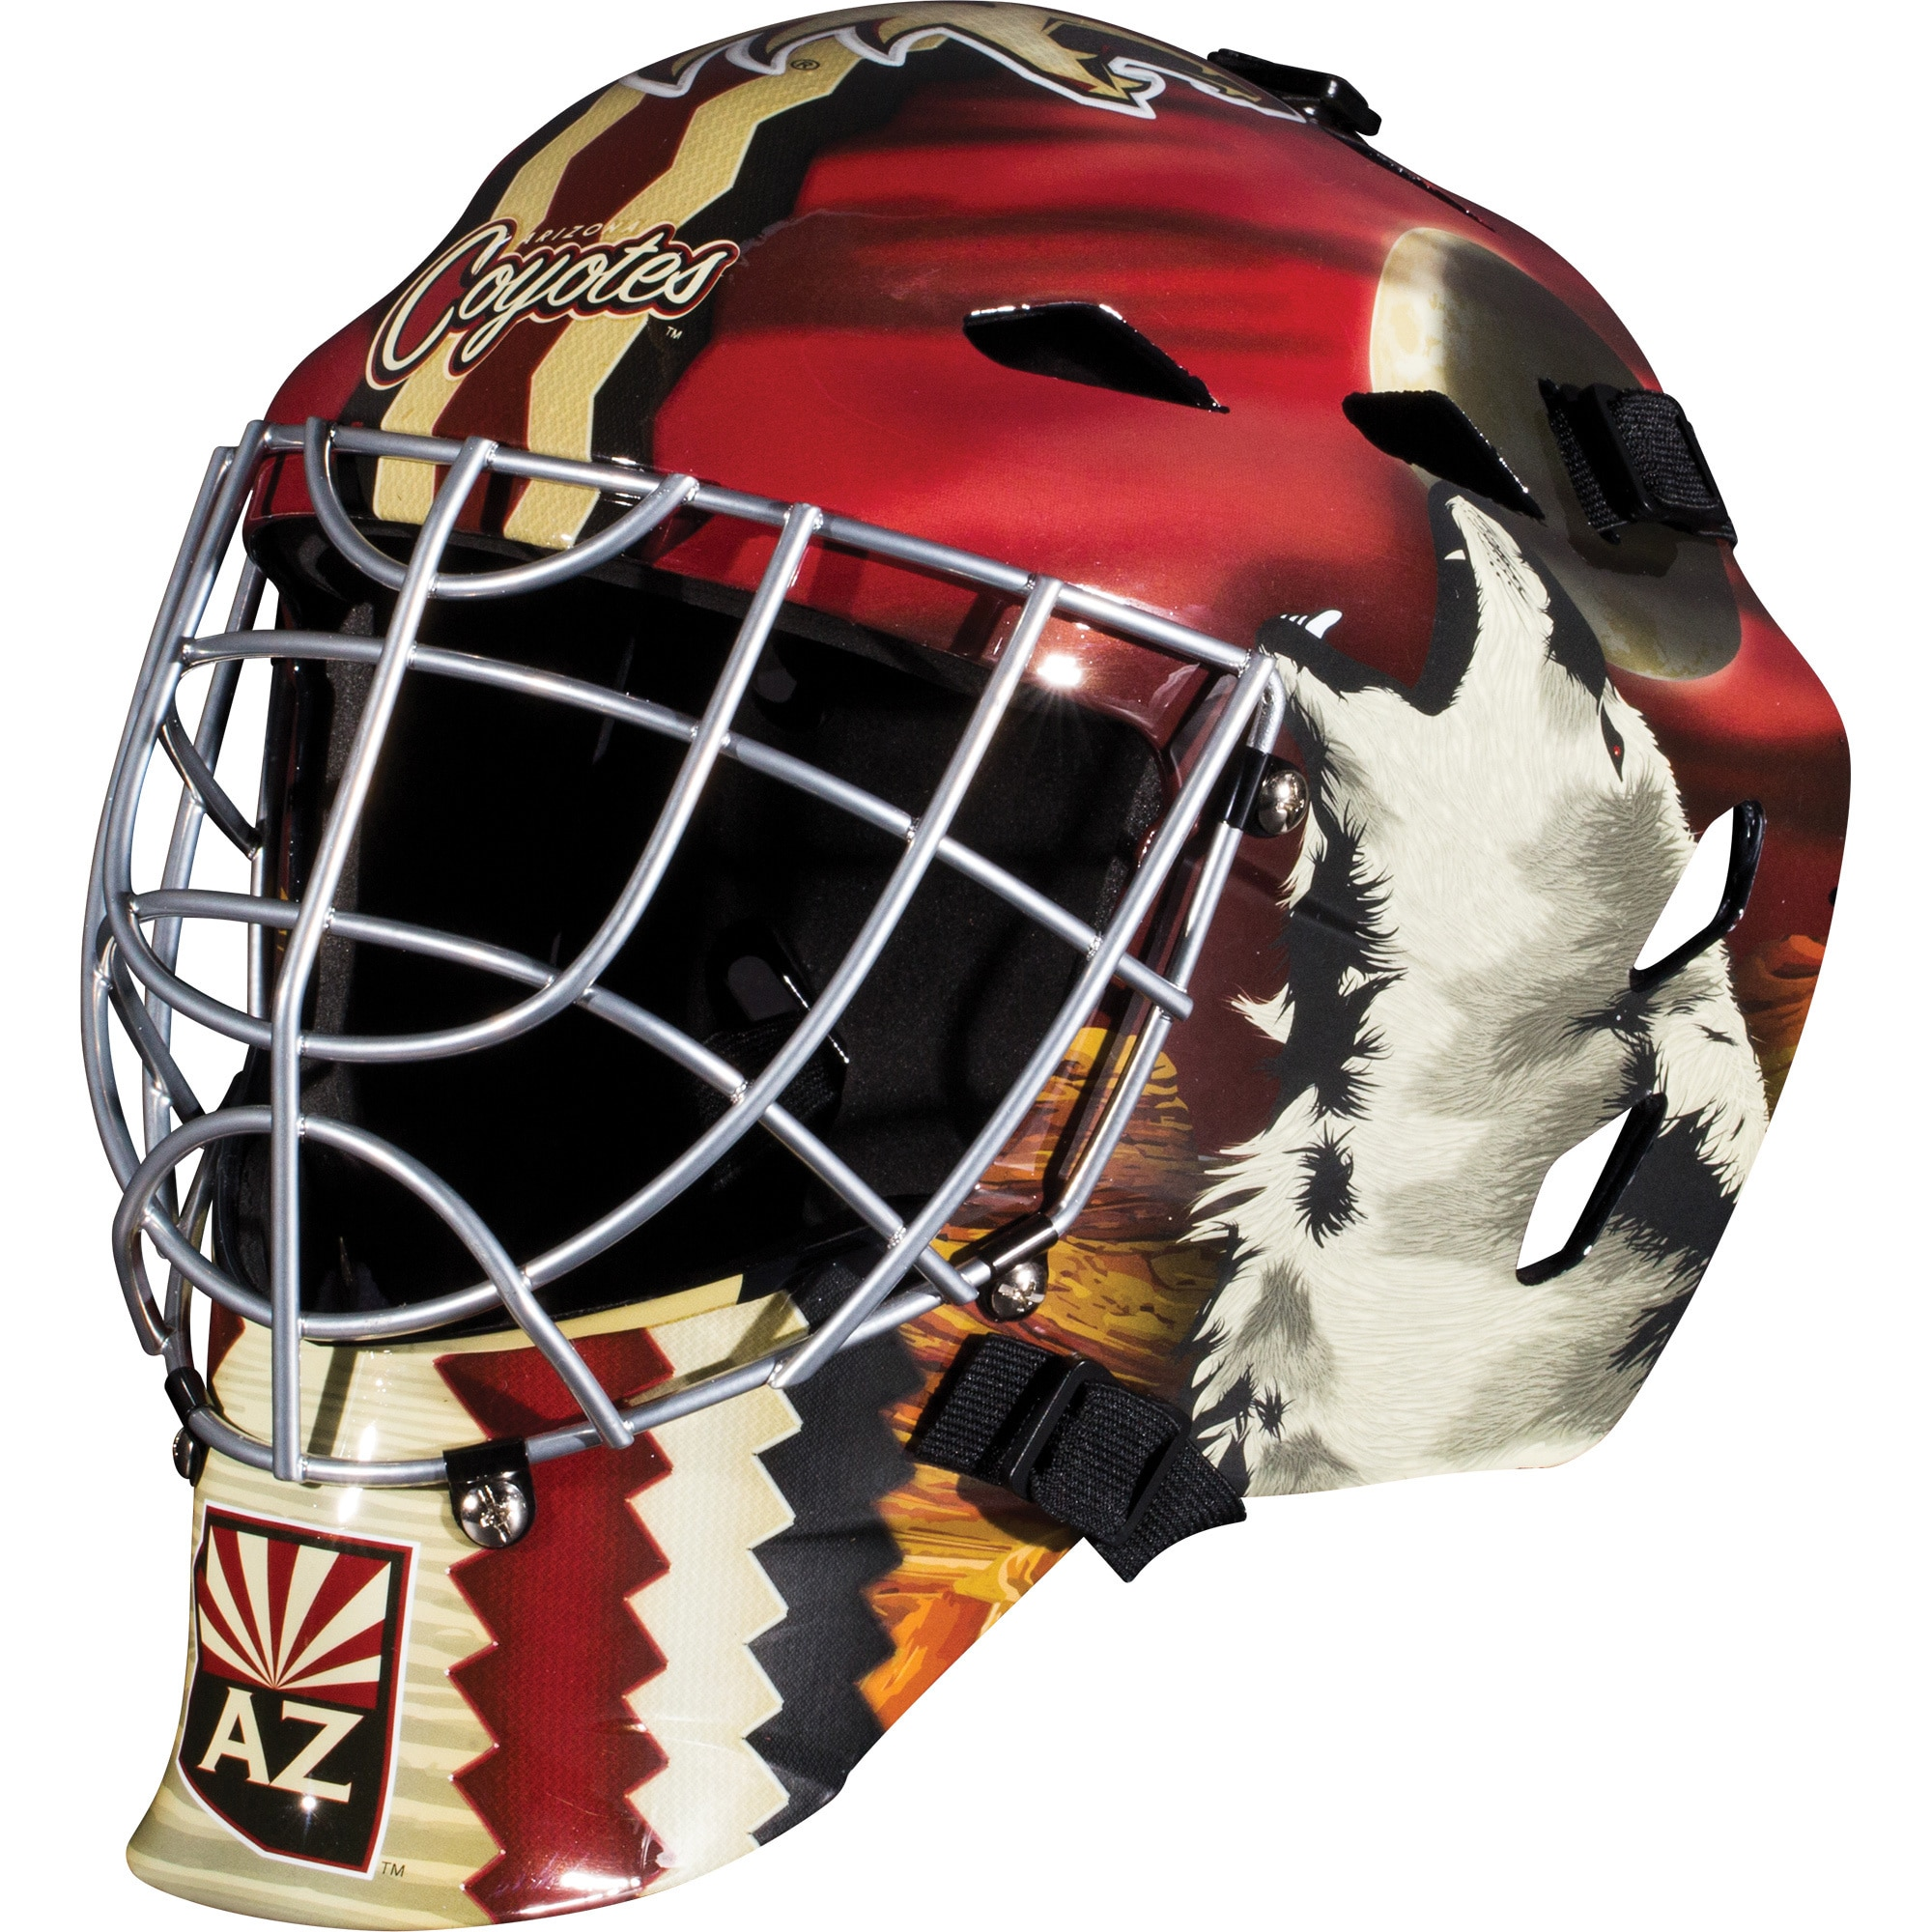 the latest 7cbbe eb667 Shop Franklin Sports NHL Team Goalie Mask - One Size Fits most - Free  Shipping On Orders Over  45 - Overstock - 10003511